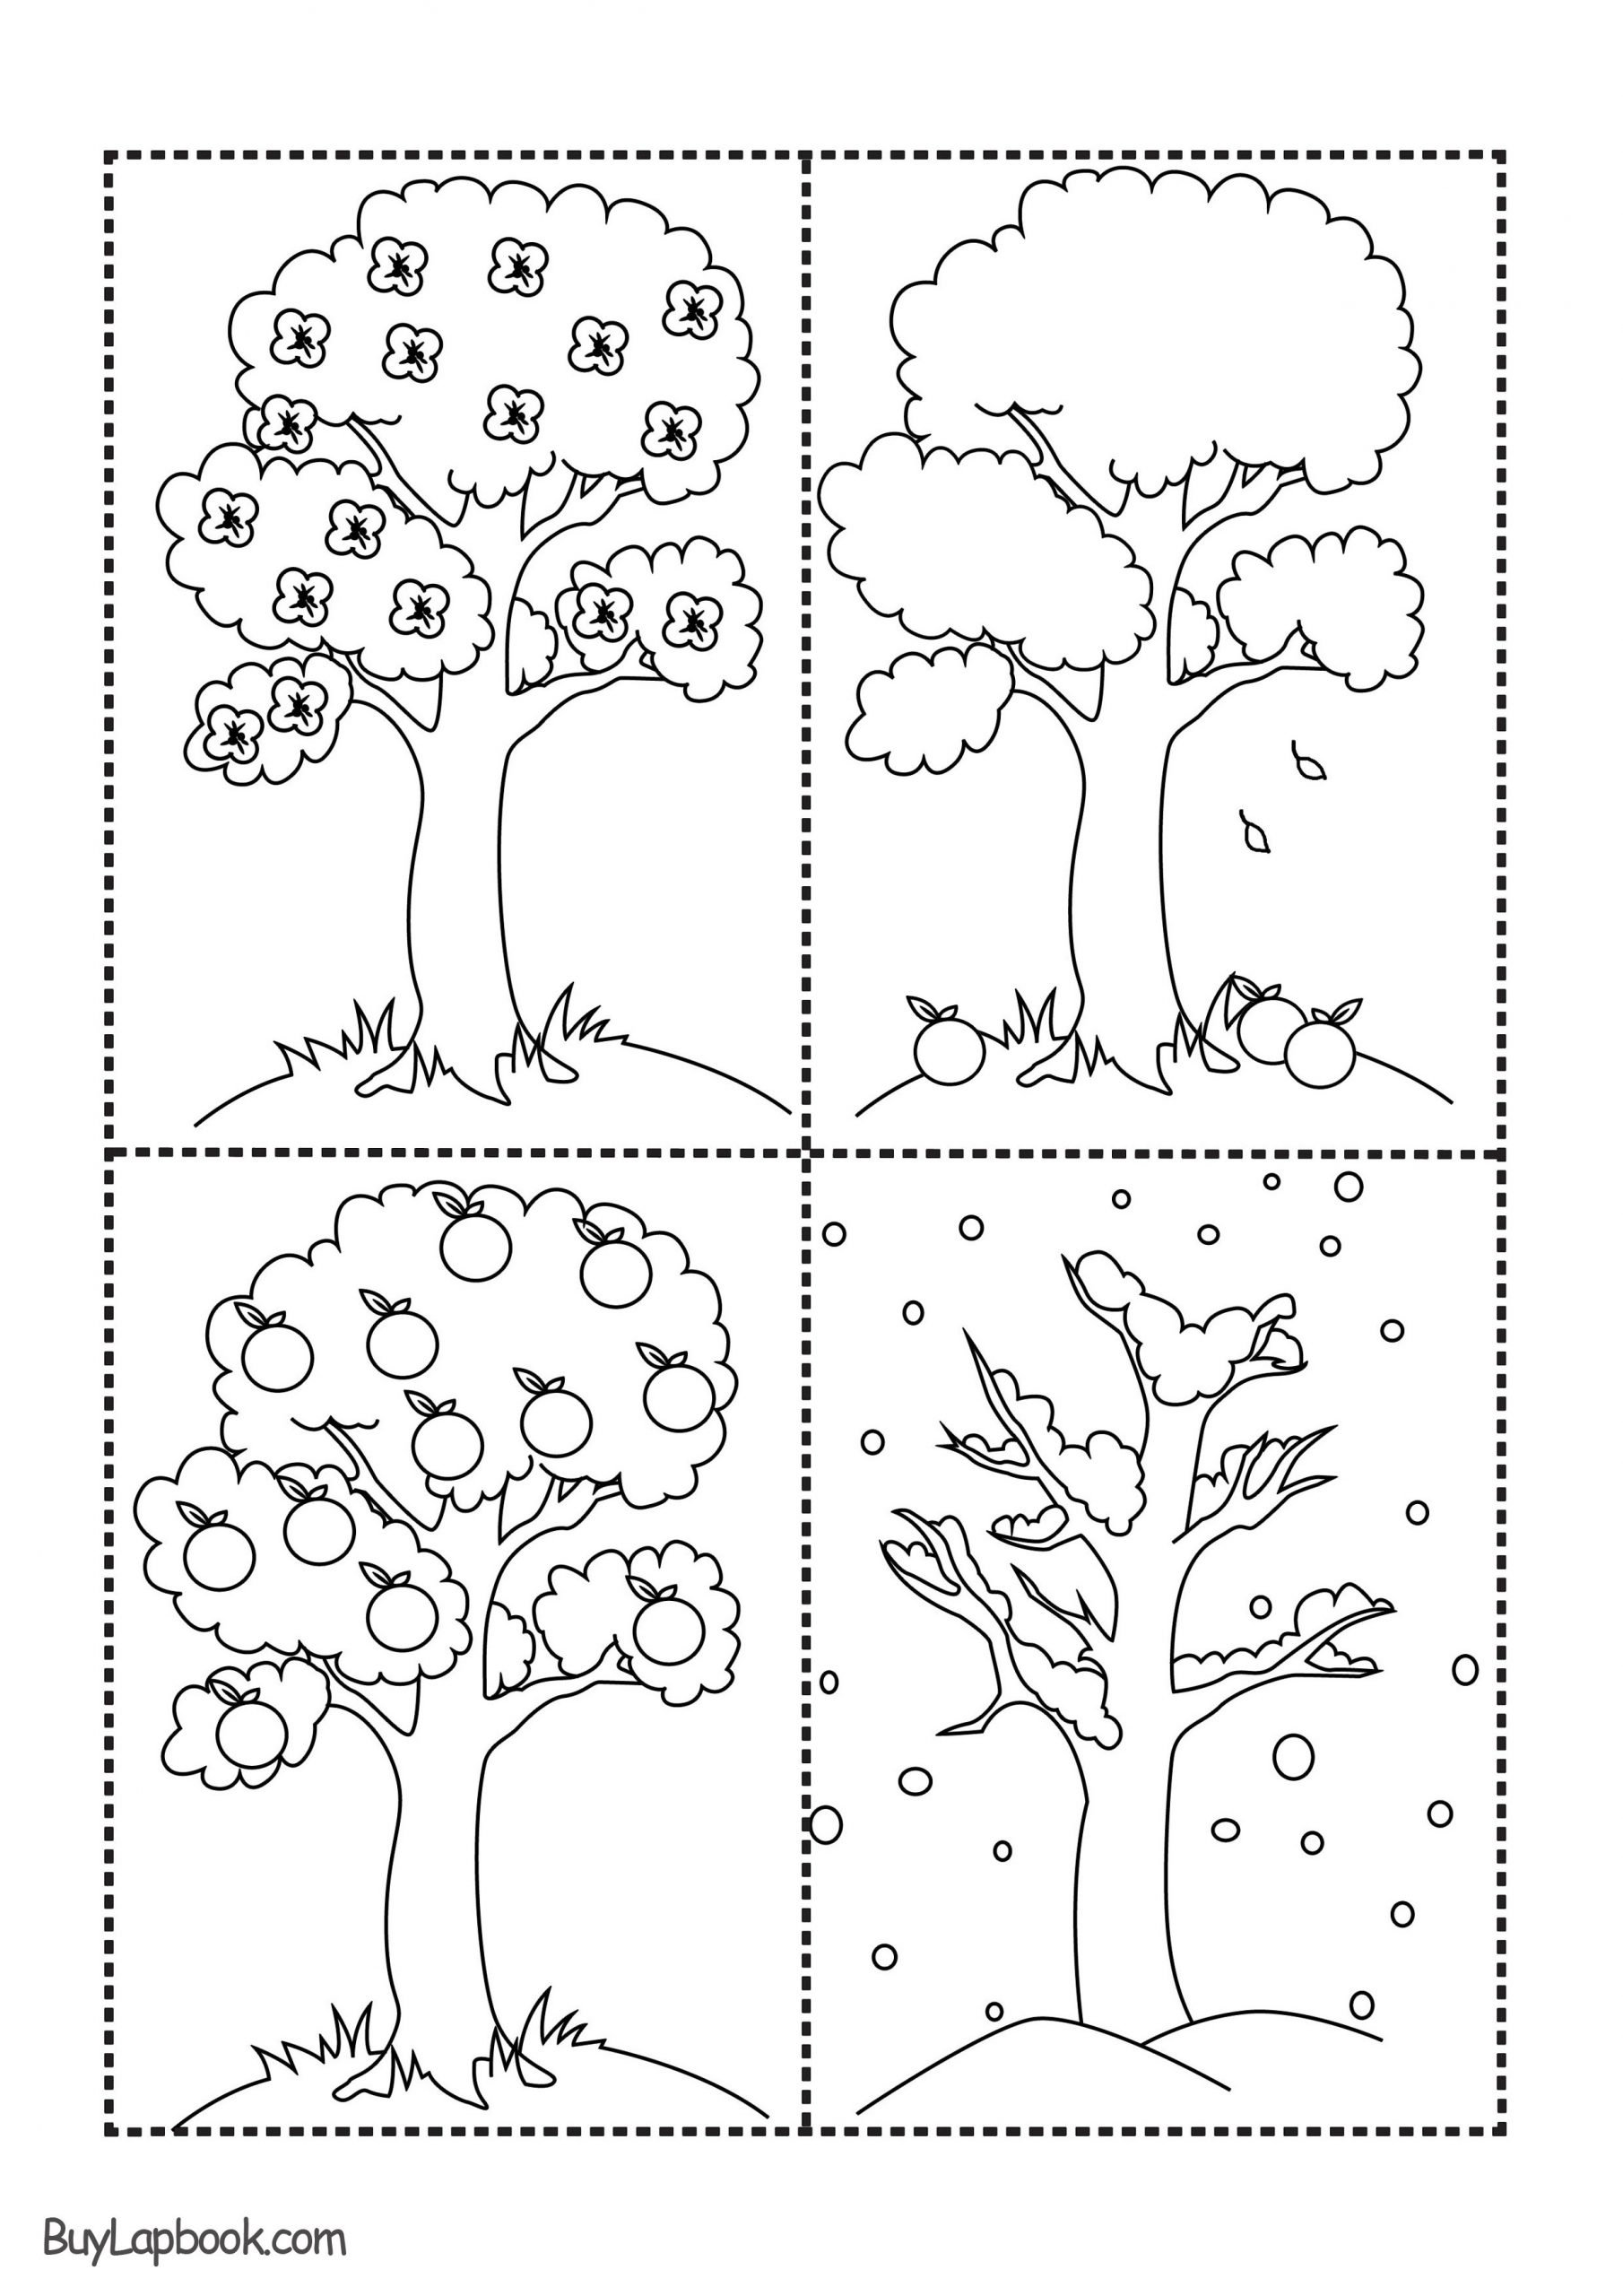 Seasons Worksheets for Kindergarten the Four Seasons Of the Apple Tree Printables – Buylapbook